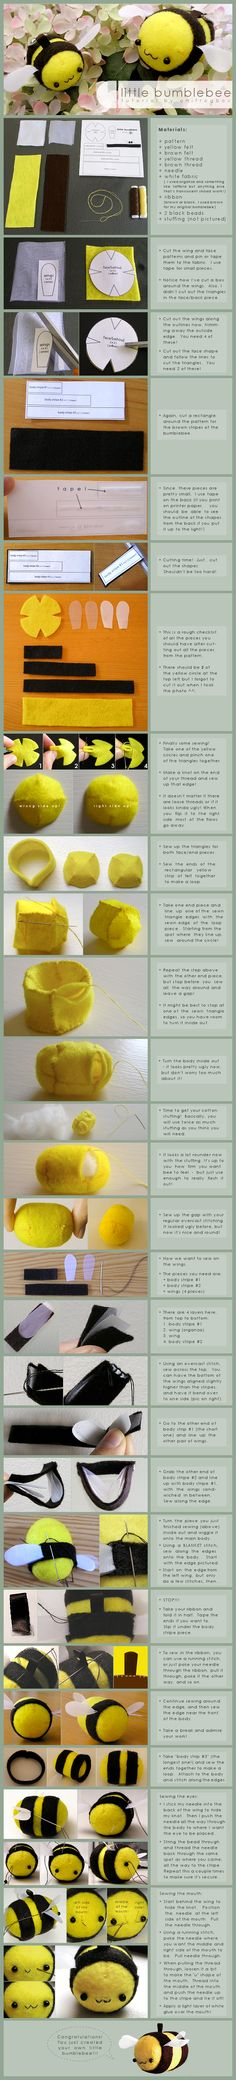 little bumblebee: tutorial by ~onifrogbox on deviantART